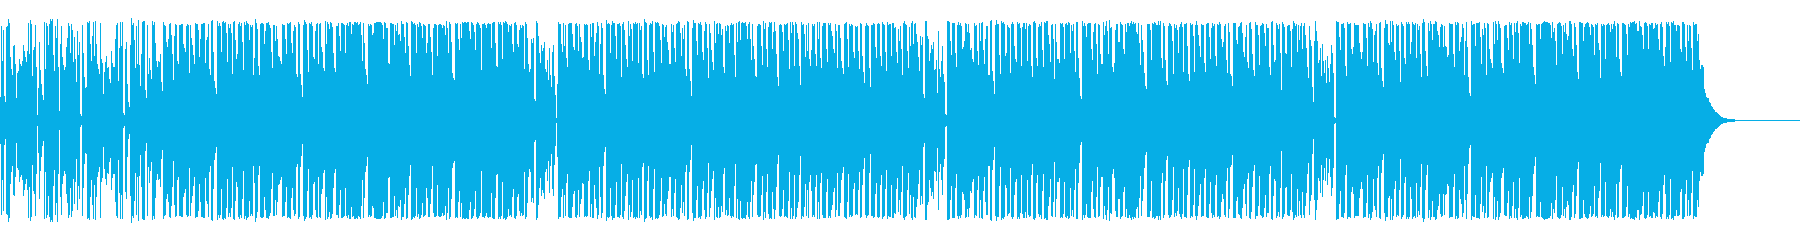 Happy and cheerful's reproduced waveform